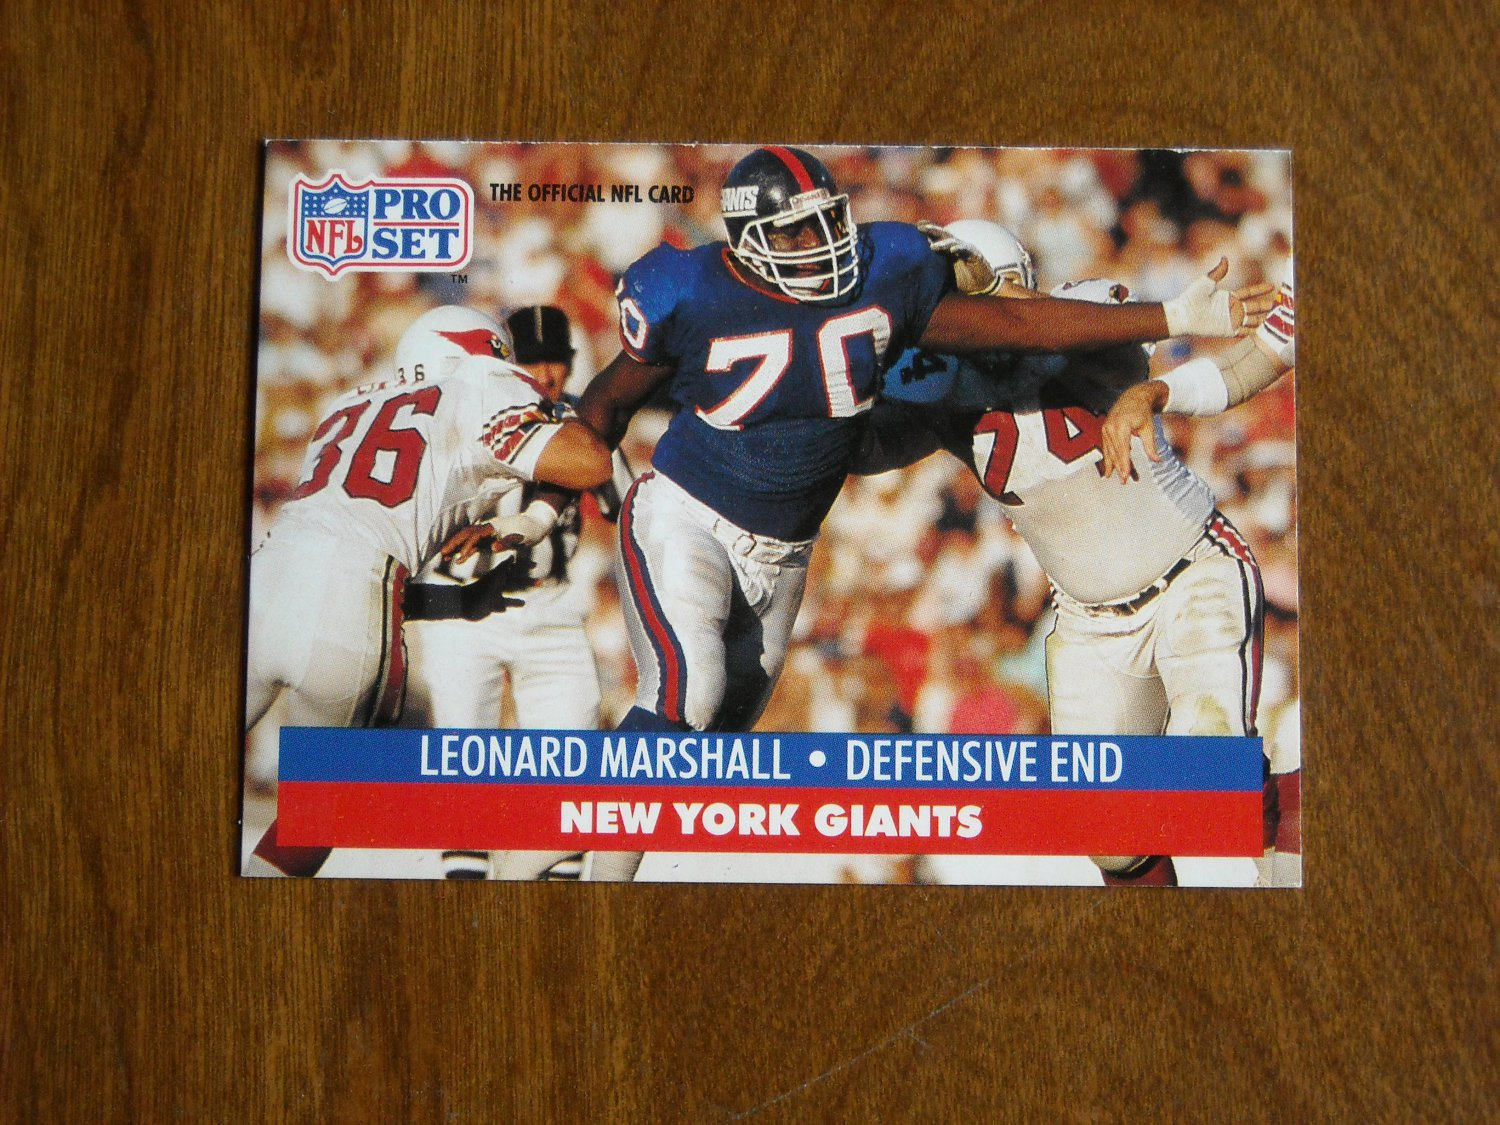 Leonard Marshall New York Giants Defensive End Card No. 67 - 1991 NFL Pro Set Football Card